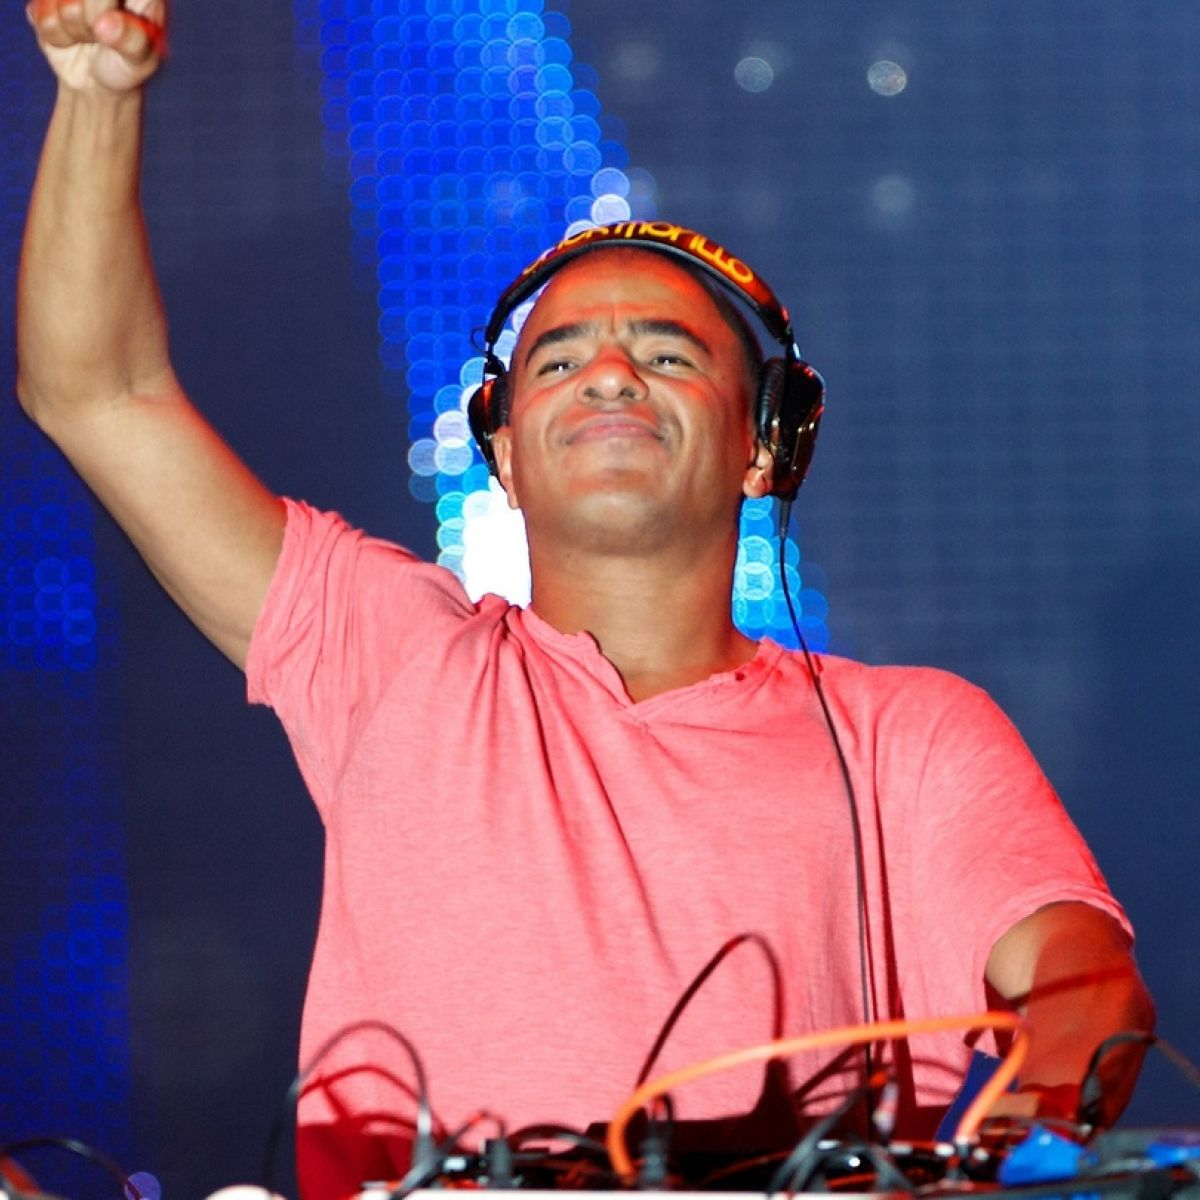 Erick Morillo found dead at just 49 years old